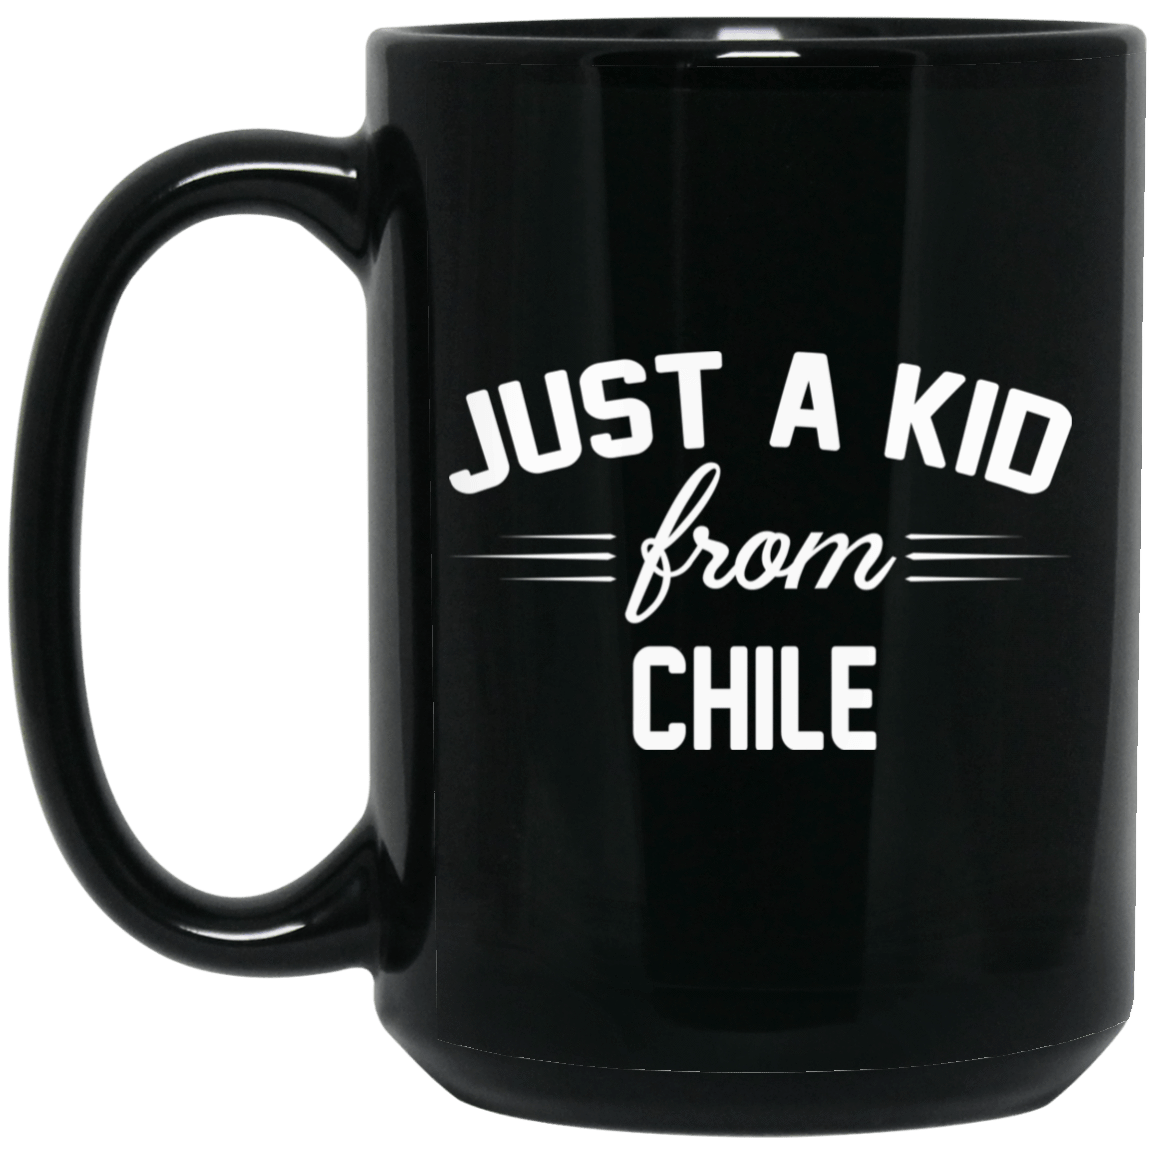 Just A Kid Store | Chile Mug 1066-10182-72111282-49311 - Tee Ript